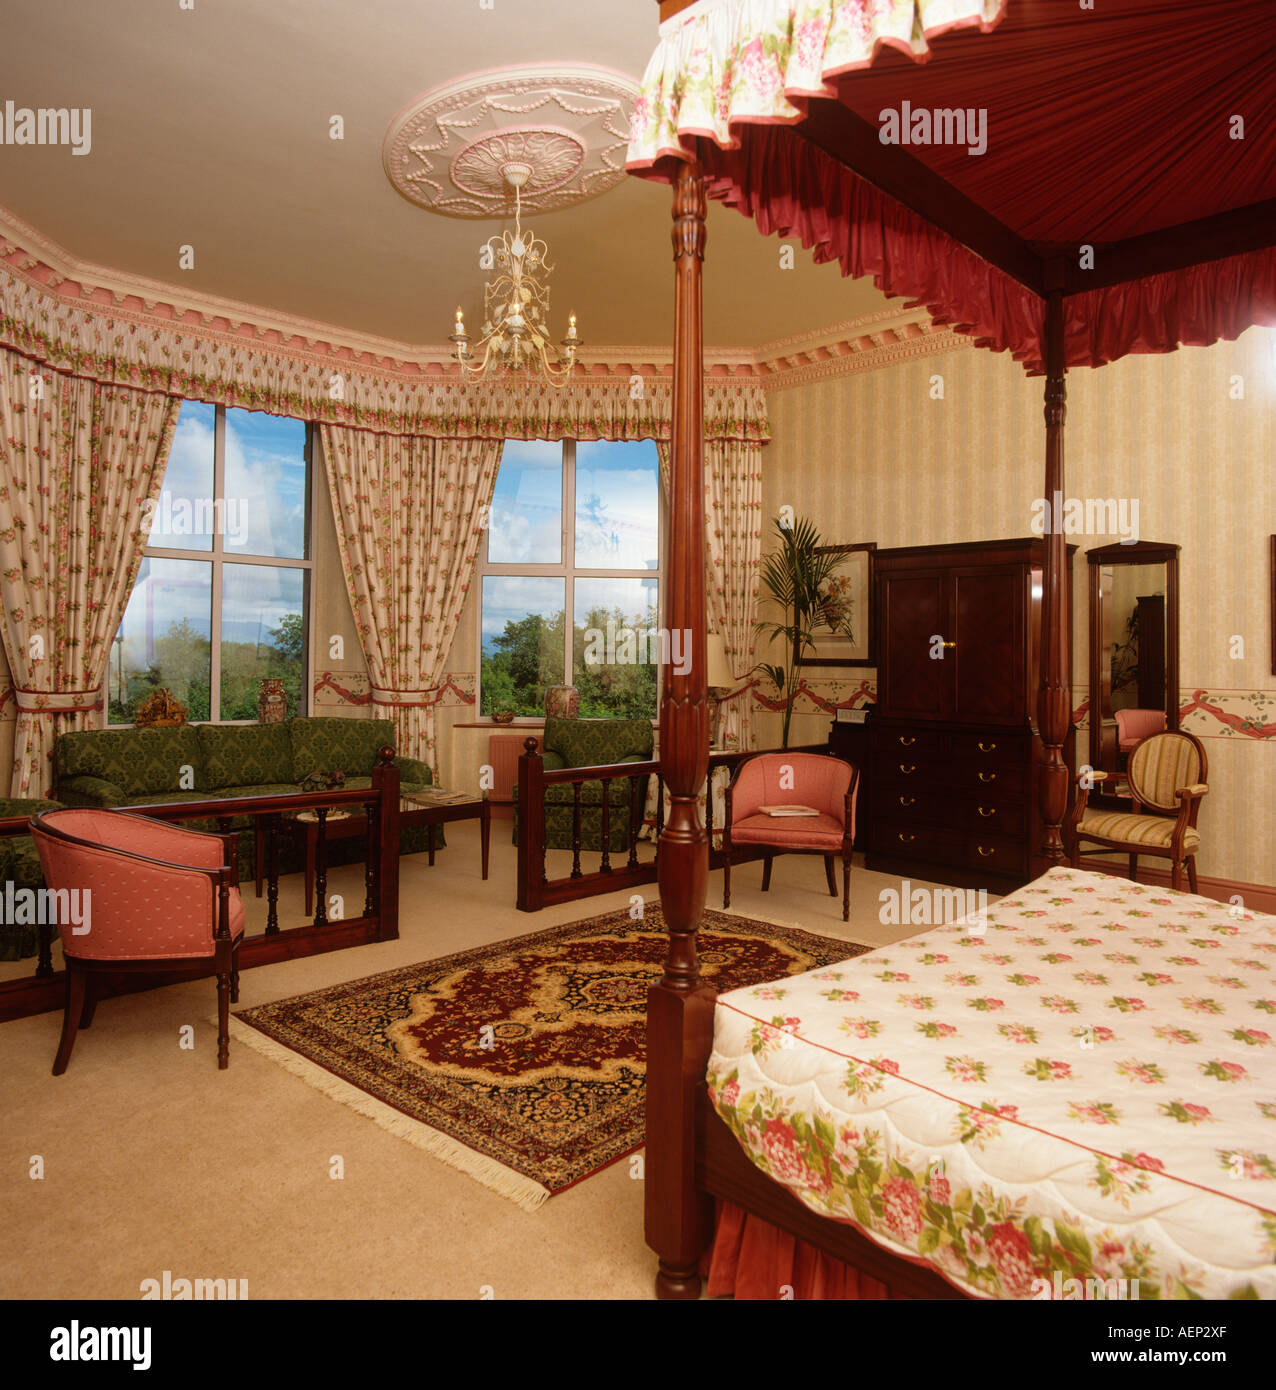 Accommodation luxurious country house hotel bedroom - Stock Image